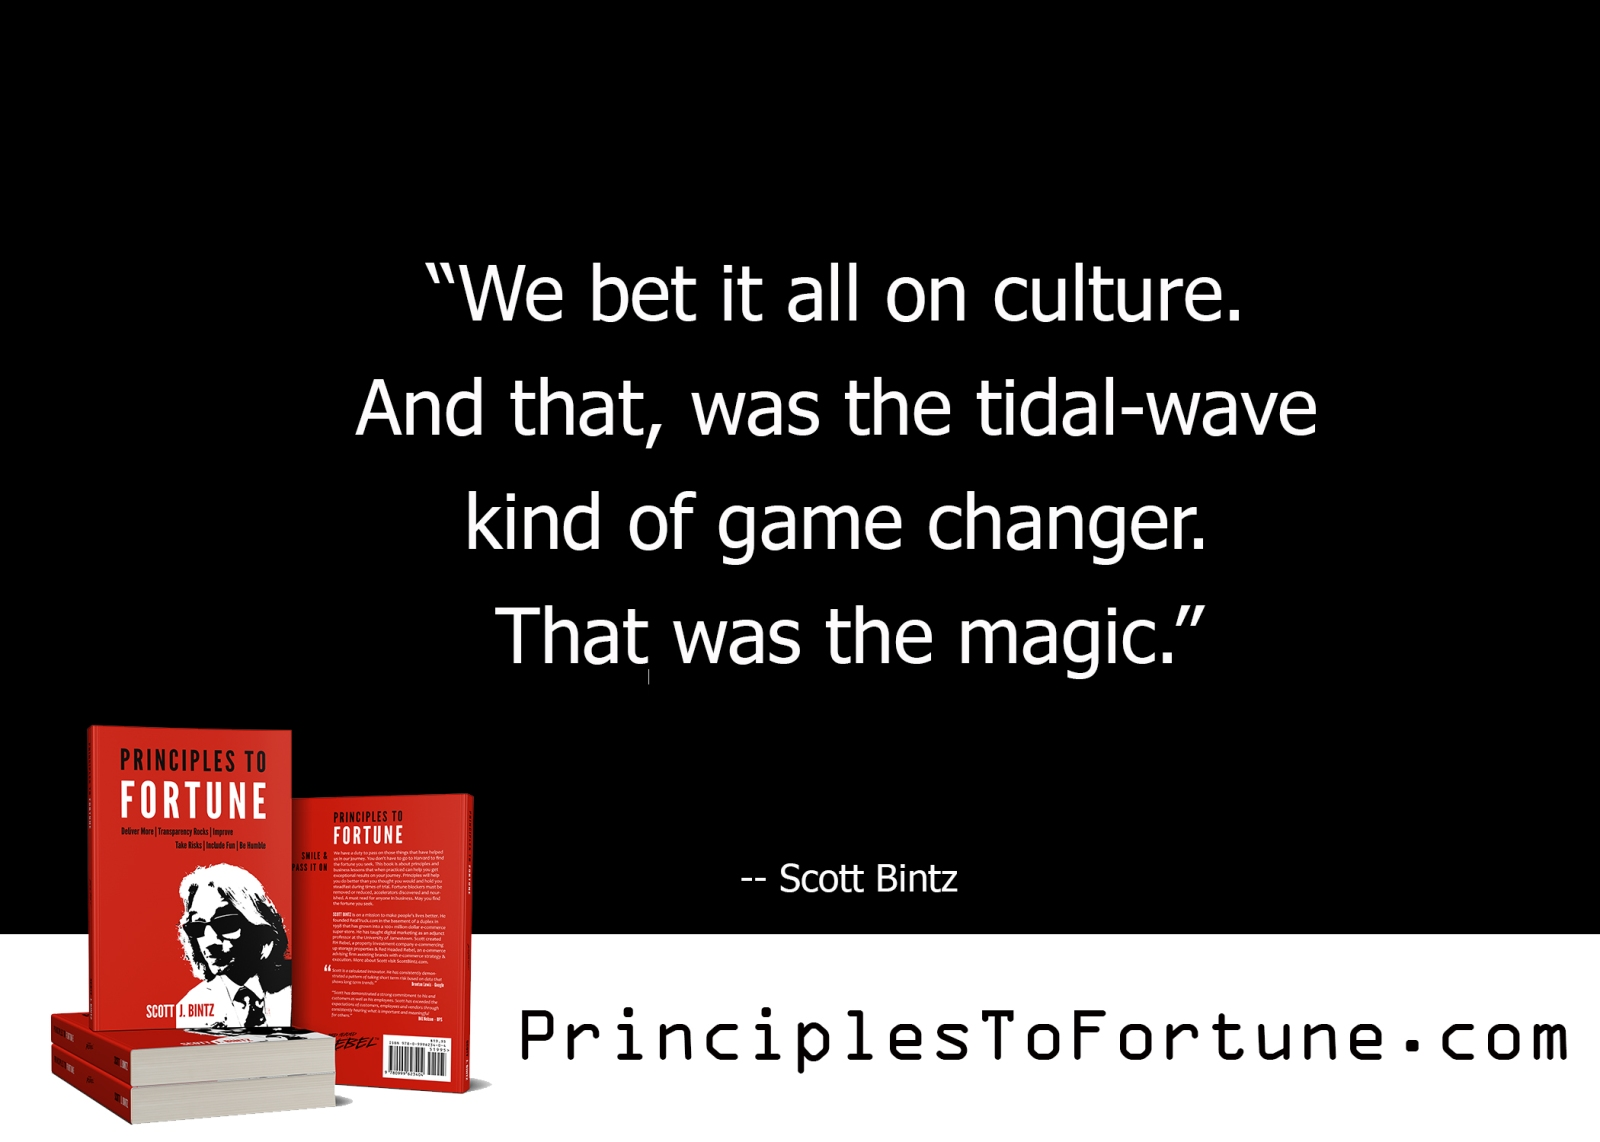 """""""We bet it all on culture. And that, was the tidal-wave kind of game changer. That was the magic."""" -- Quote from the book, Principles To Fortune by Scott Bintz"""